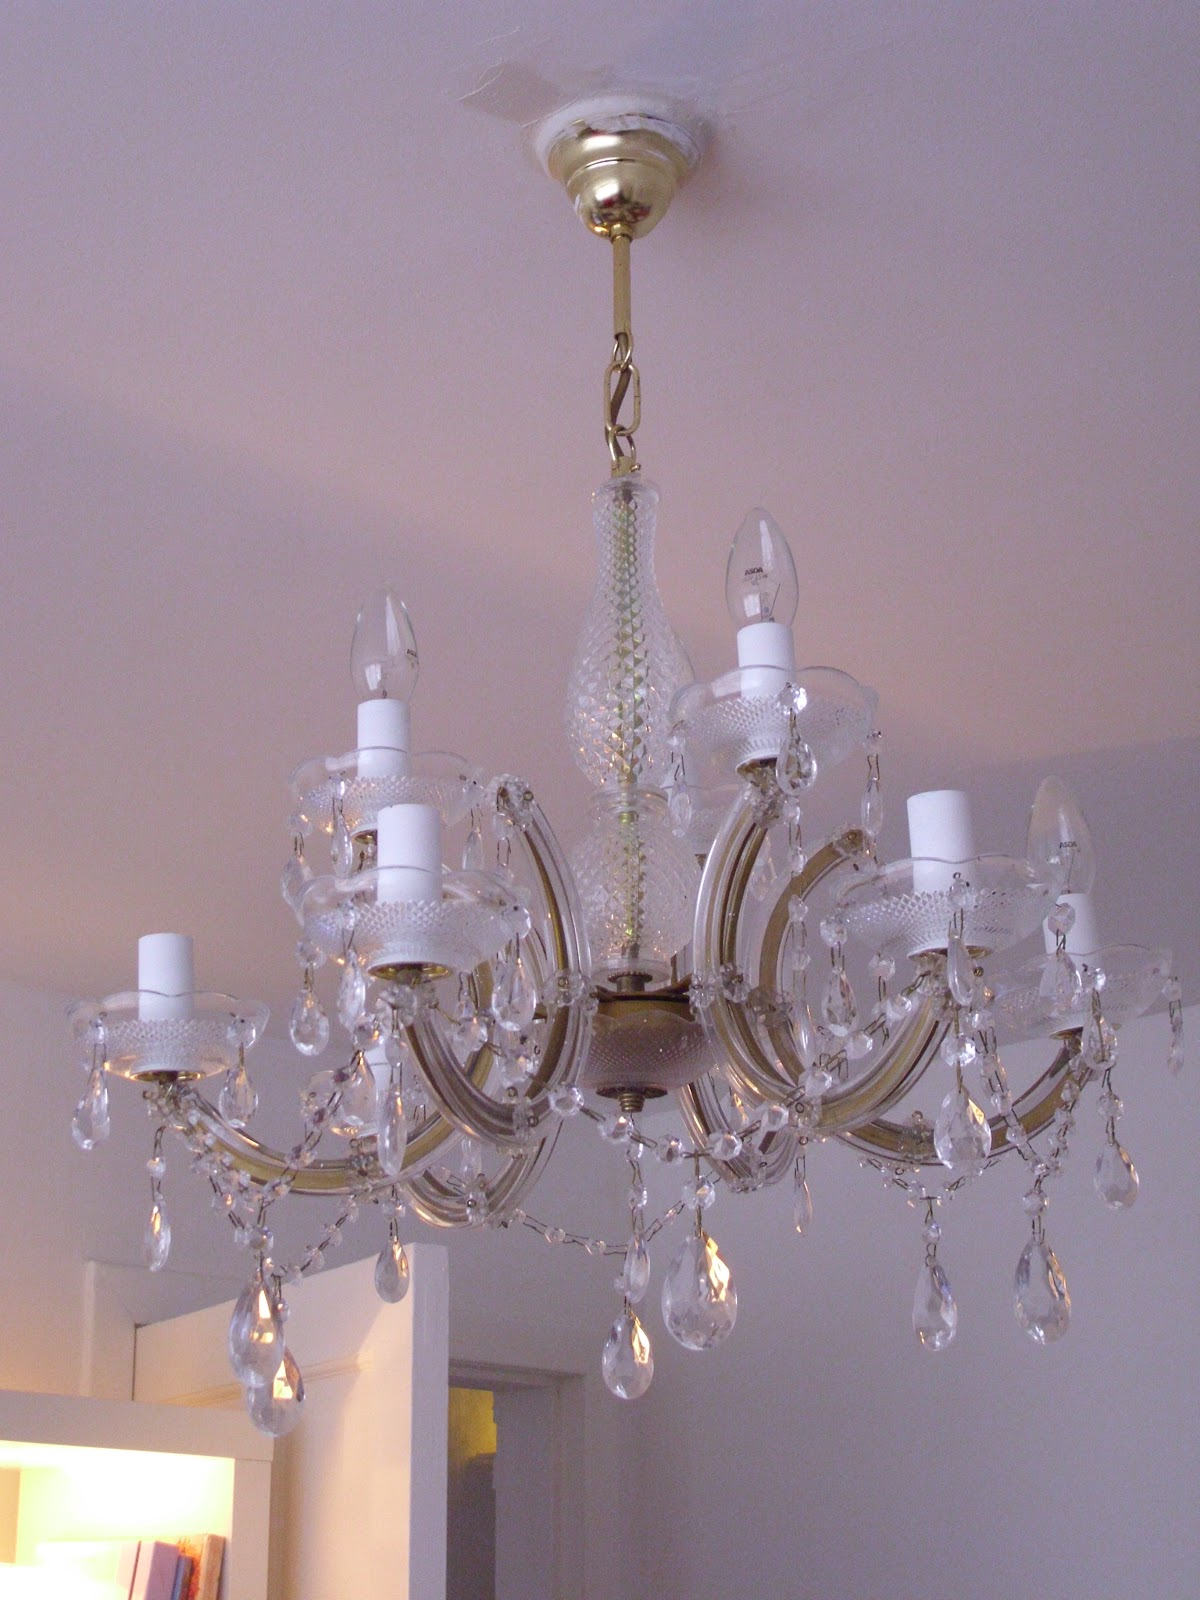 80s chandelier another rescue from the skip i fell in love with this instantly as to be expected with modern marie therese chandeliers the arms are clad in perspex but aloadofball Choice Image